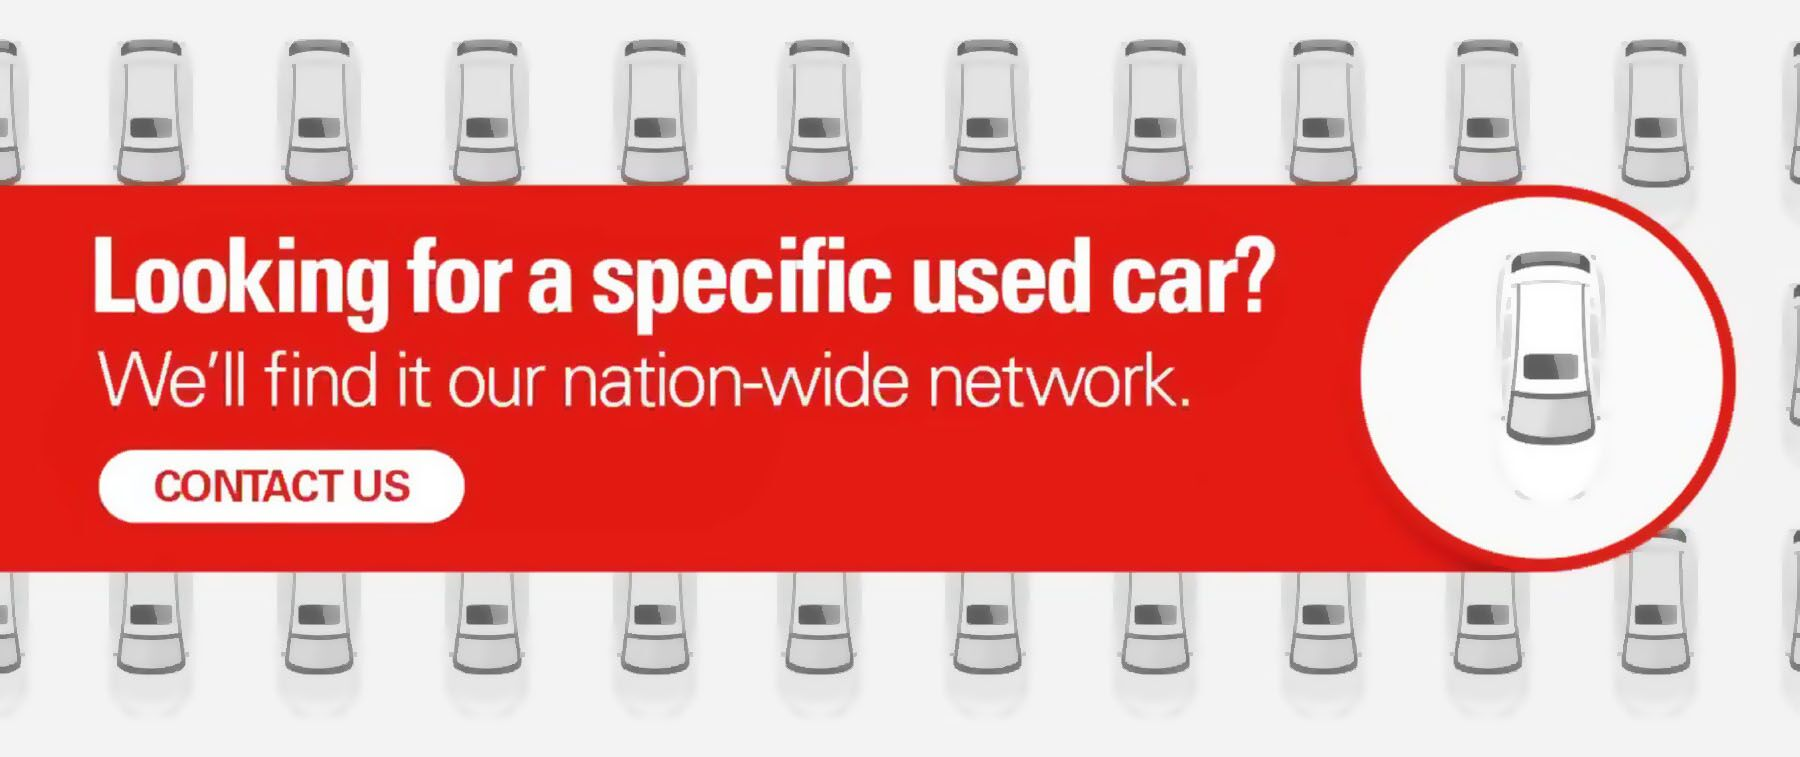 Looking for a specific used car?